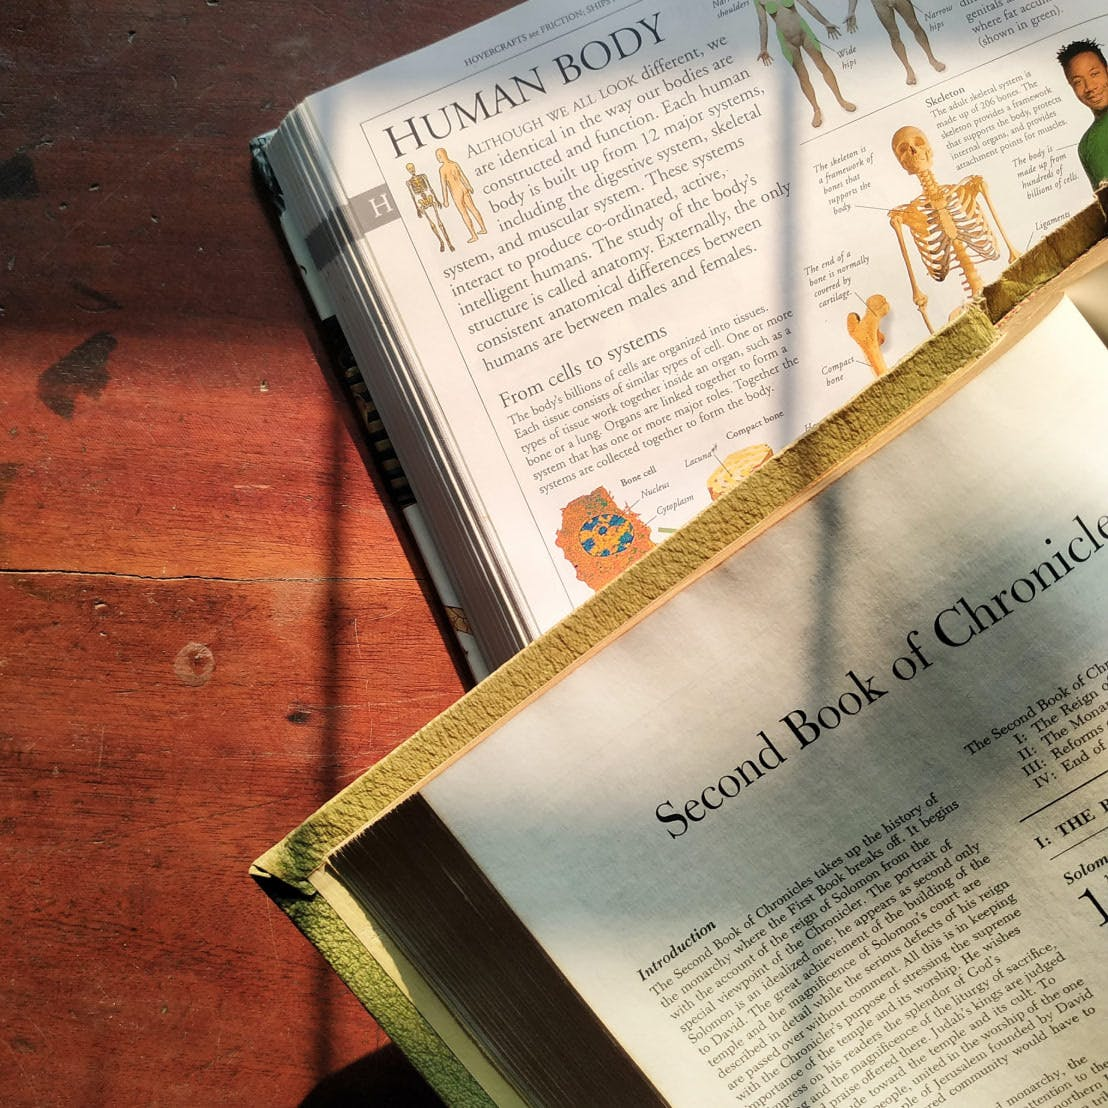 The Bible open on top of an open science textbook.